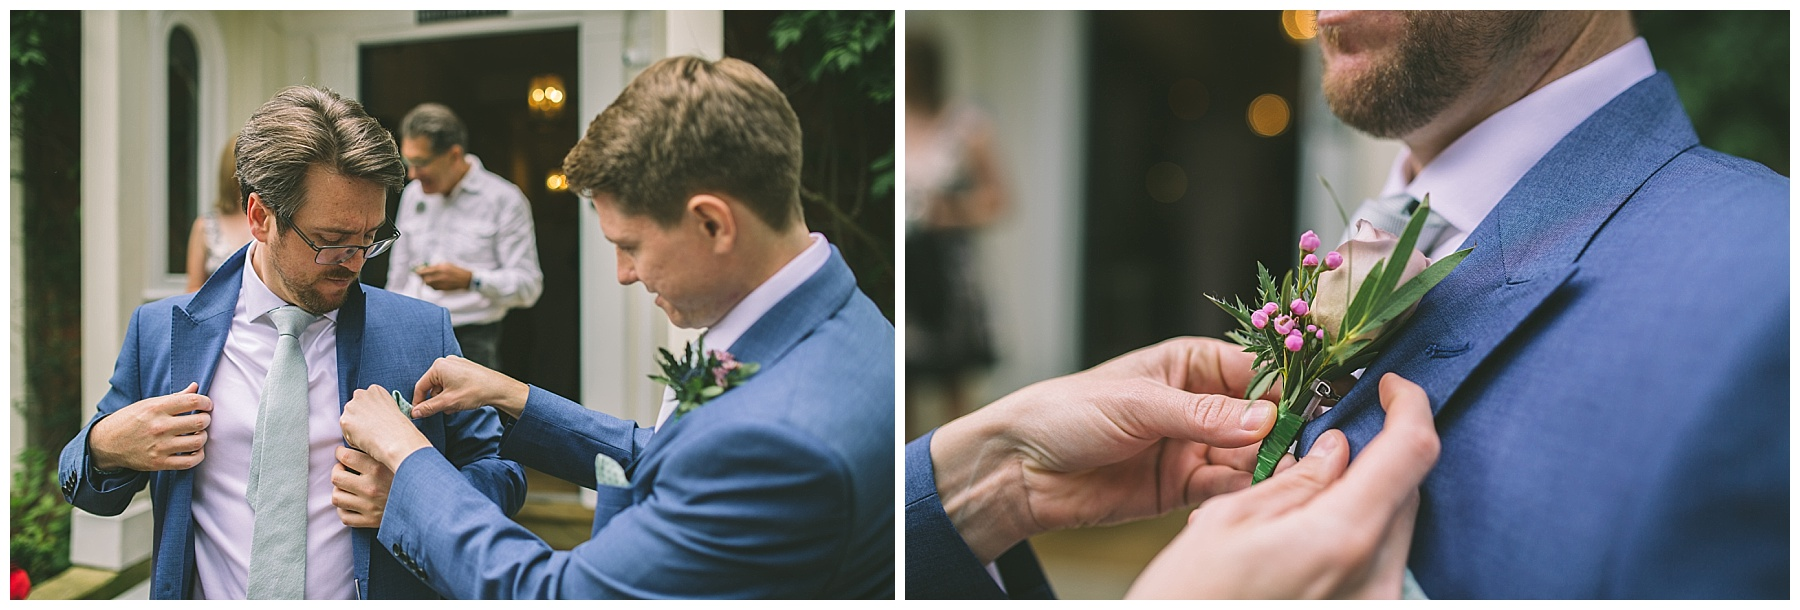 Best man helps the groom with his button hole from The Flower Lounge